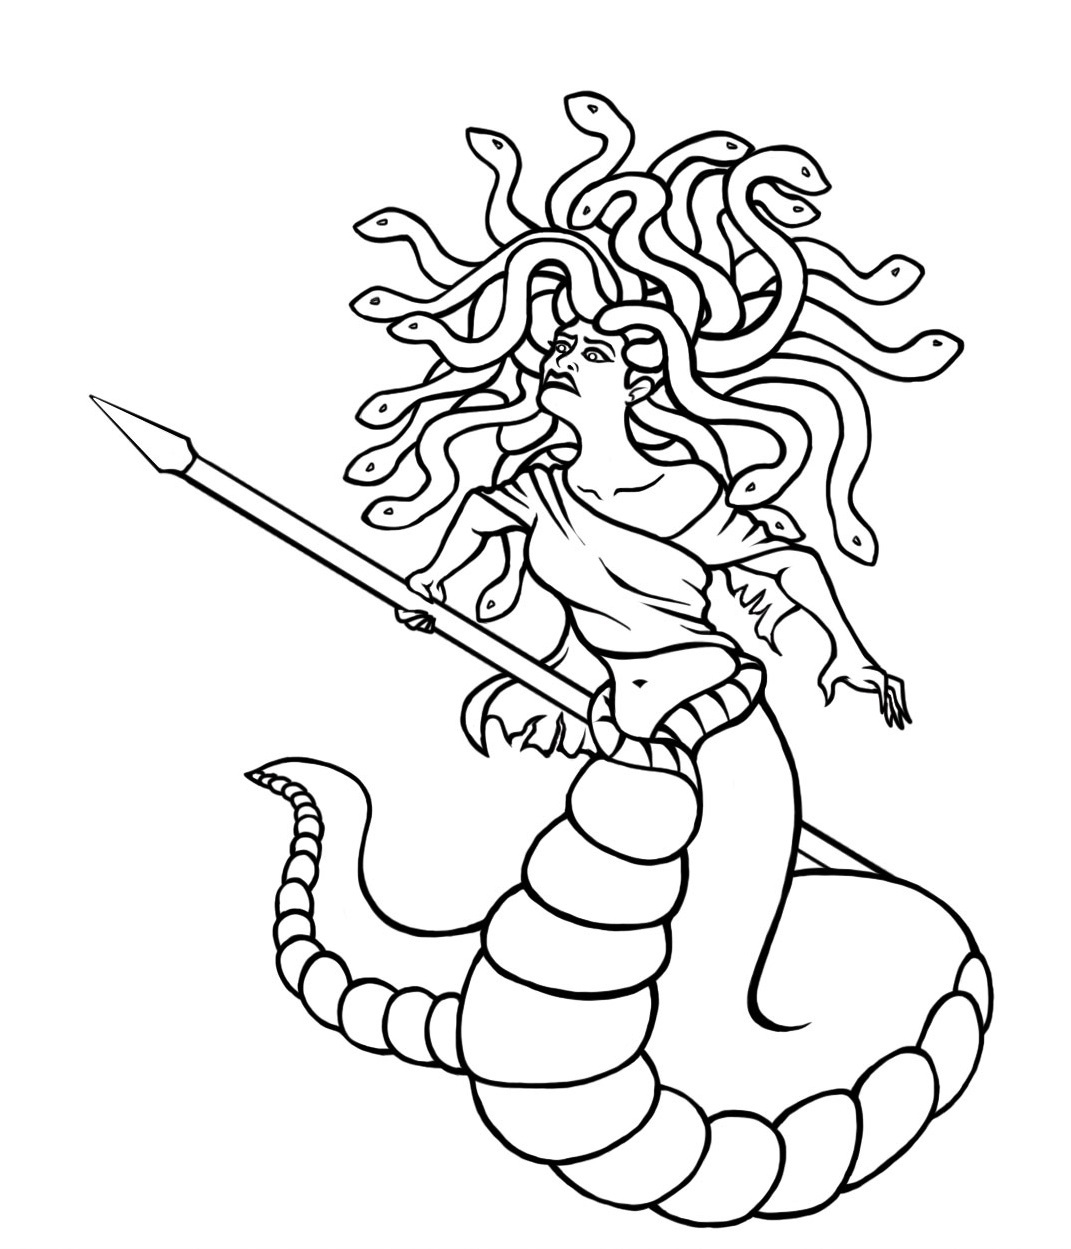 medusa gorgon outline - Picture Outlines For Colouring